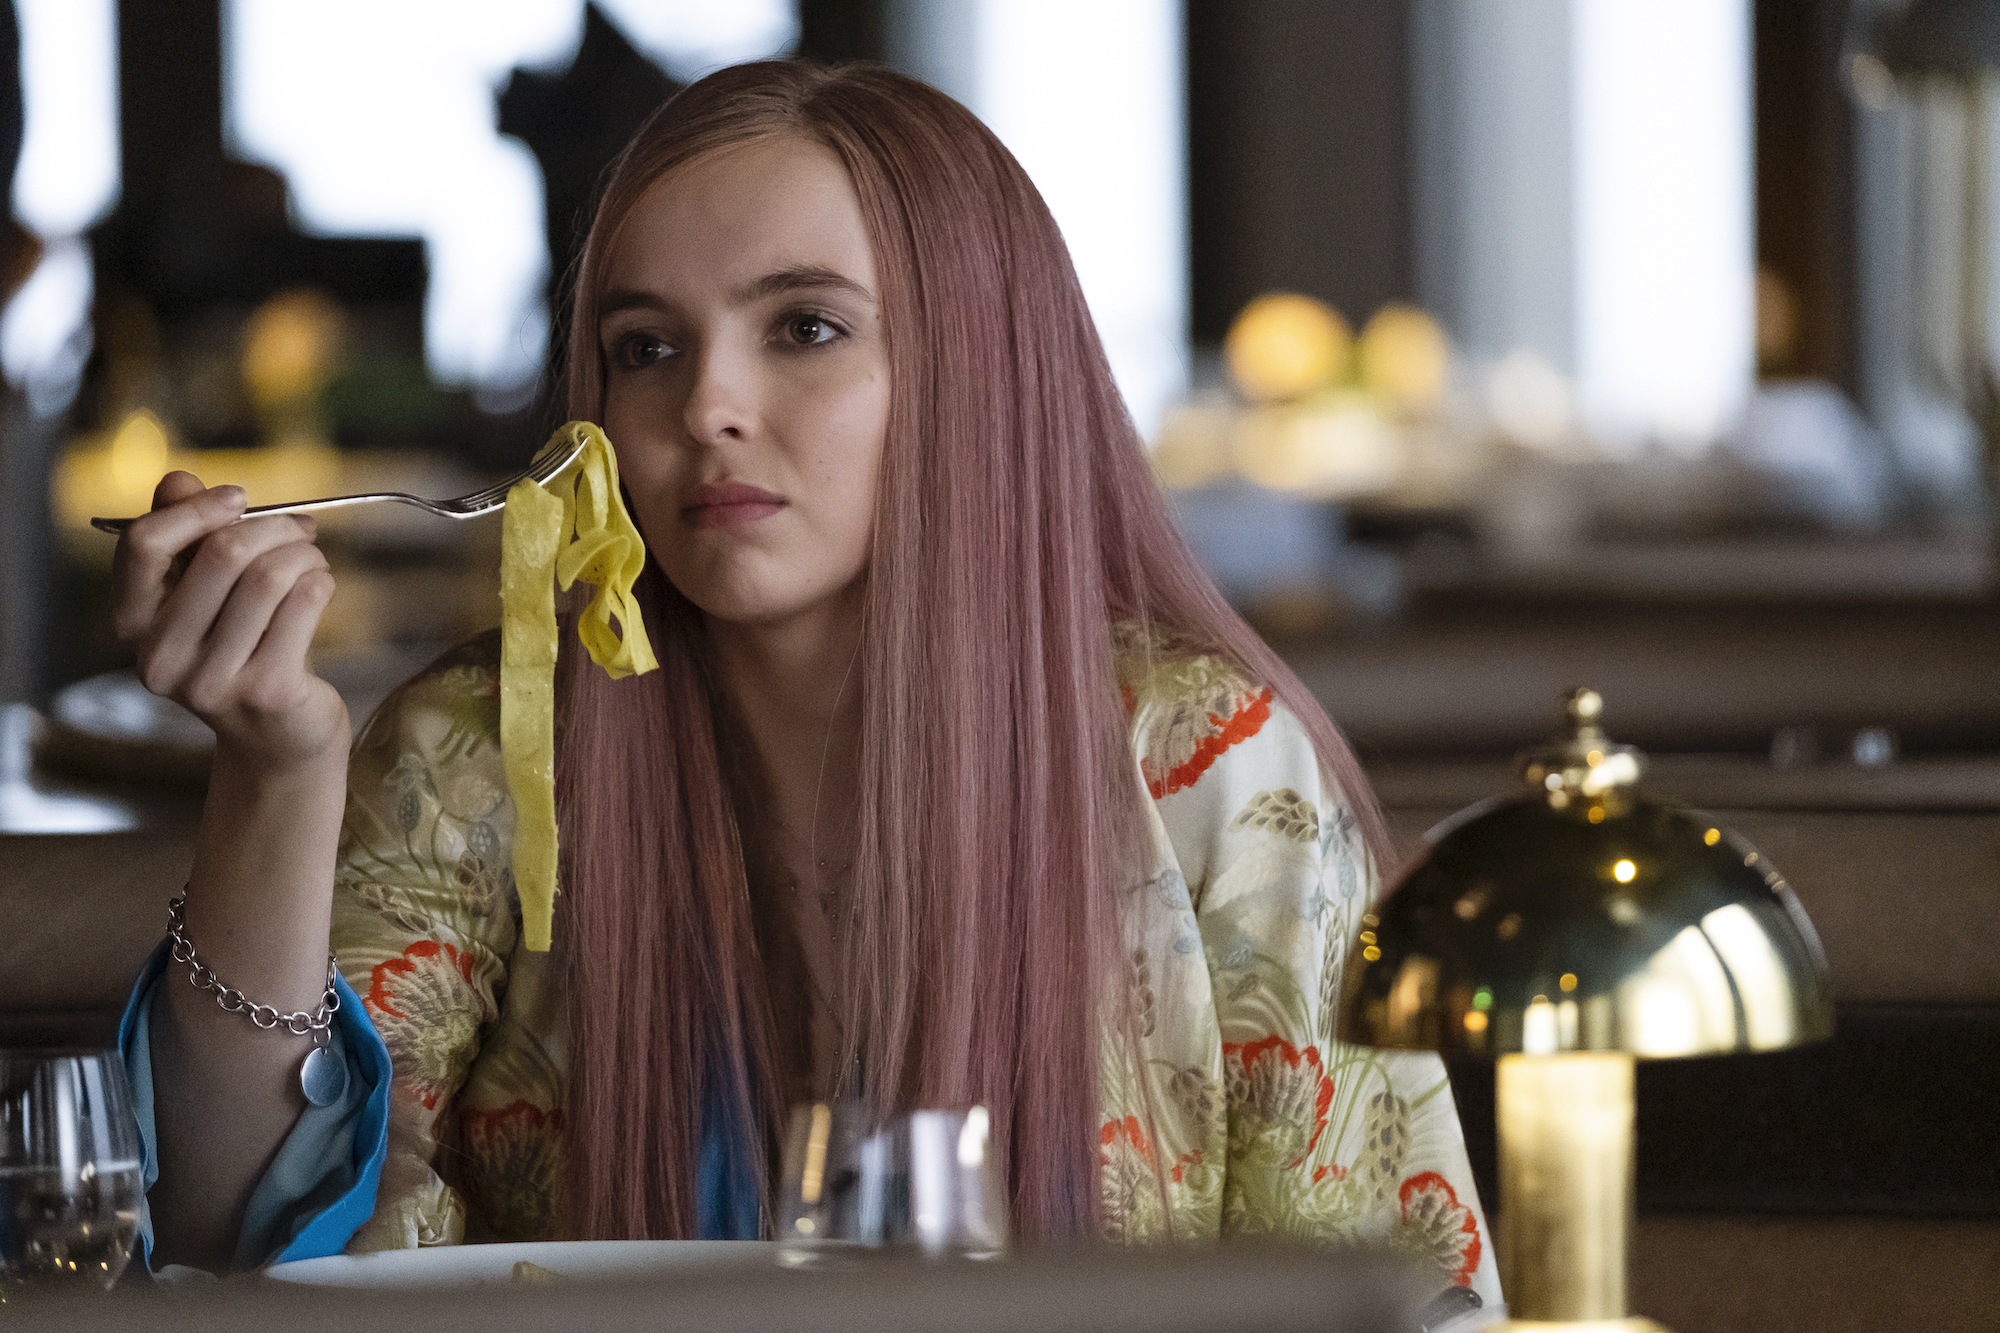 Jodie Comer as Villanelle in Season 2, eating pasta.